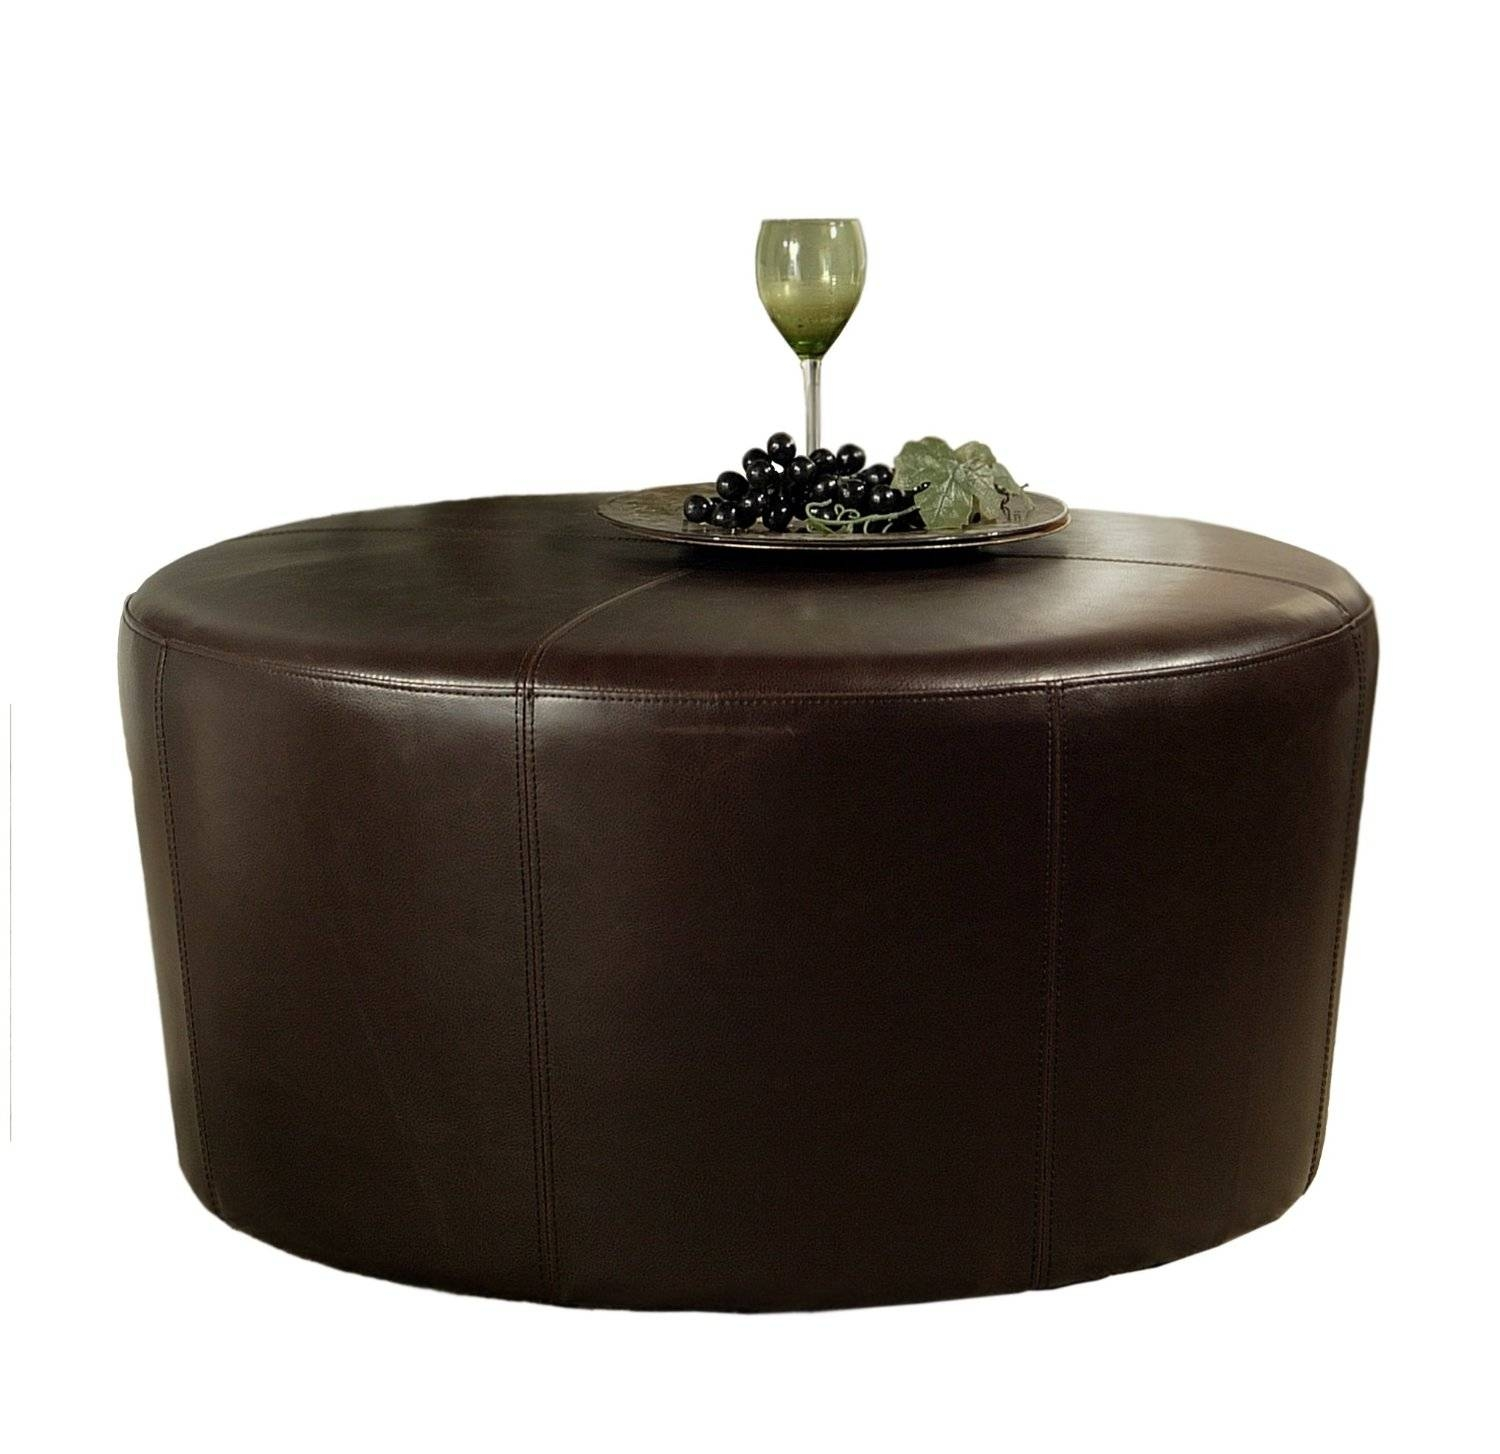 30 Best Ideas of Green Ottoman Coffee Tables